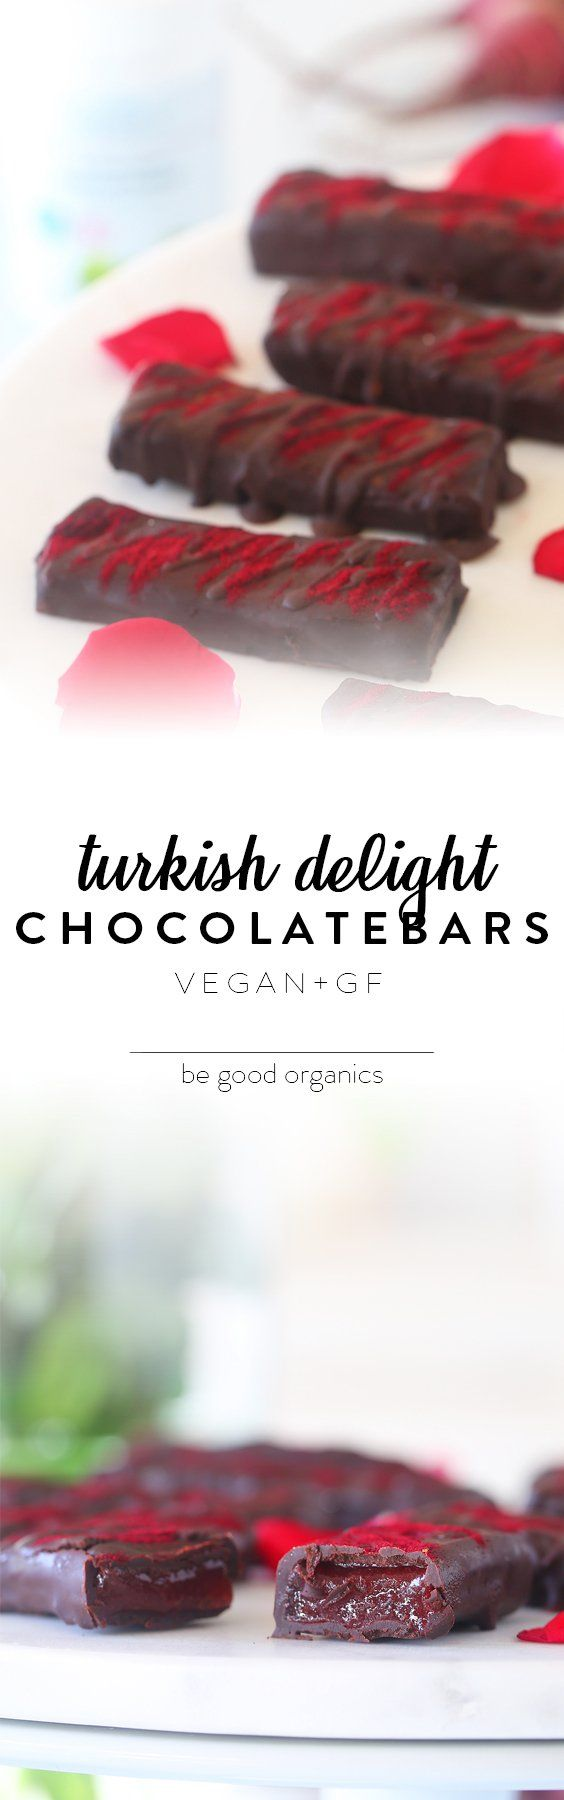 Turkish Delight Chocolate Bars - Be Good Organics